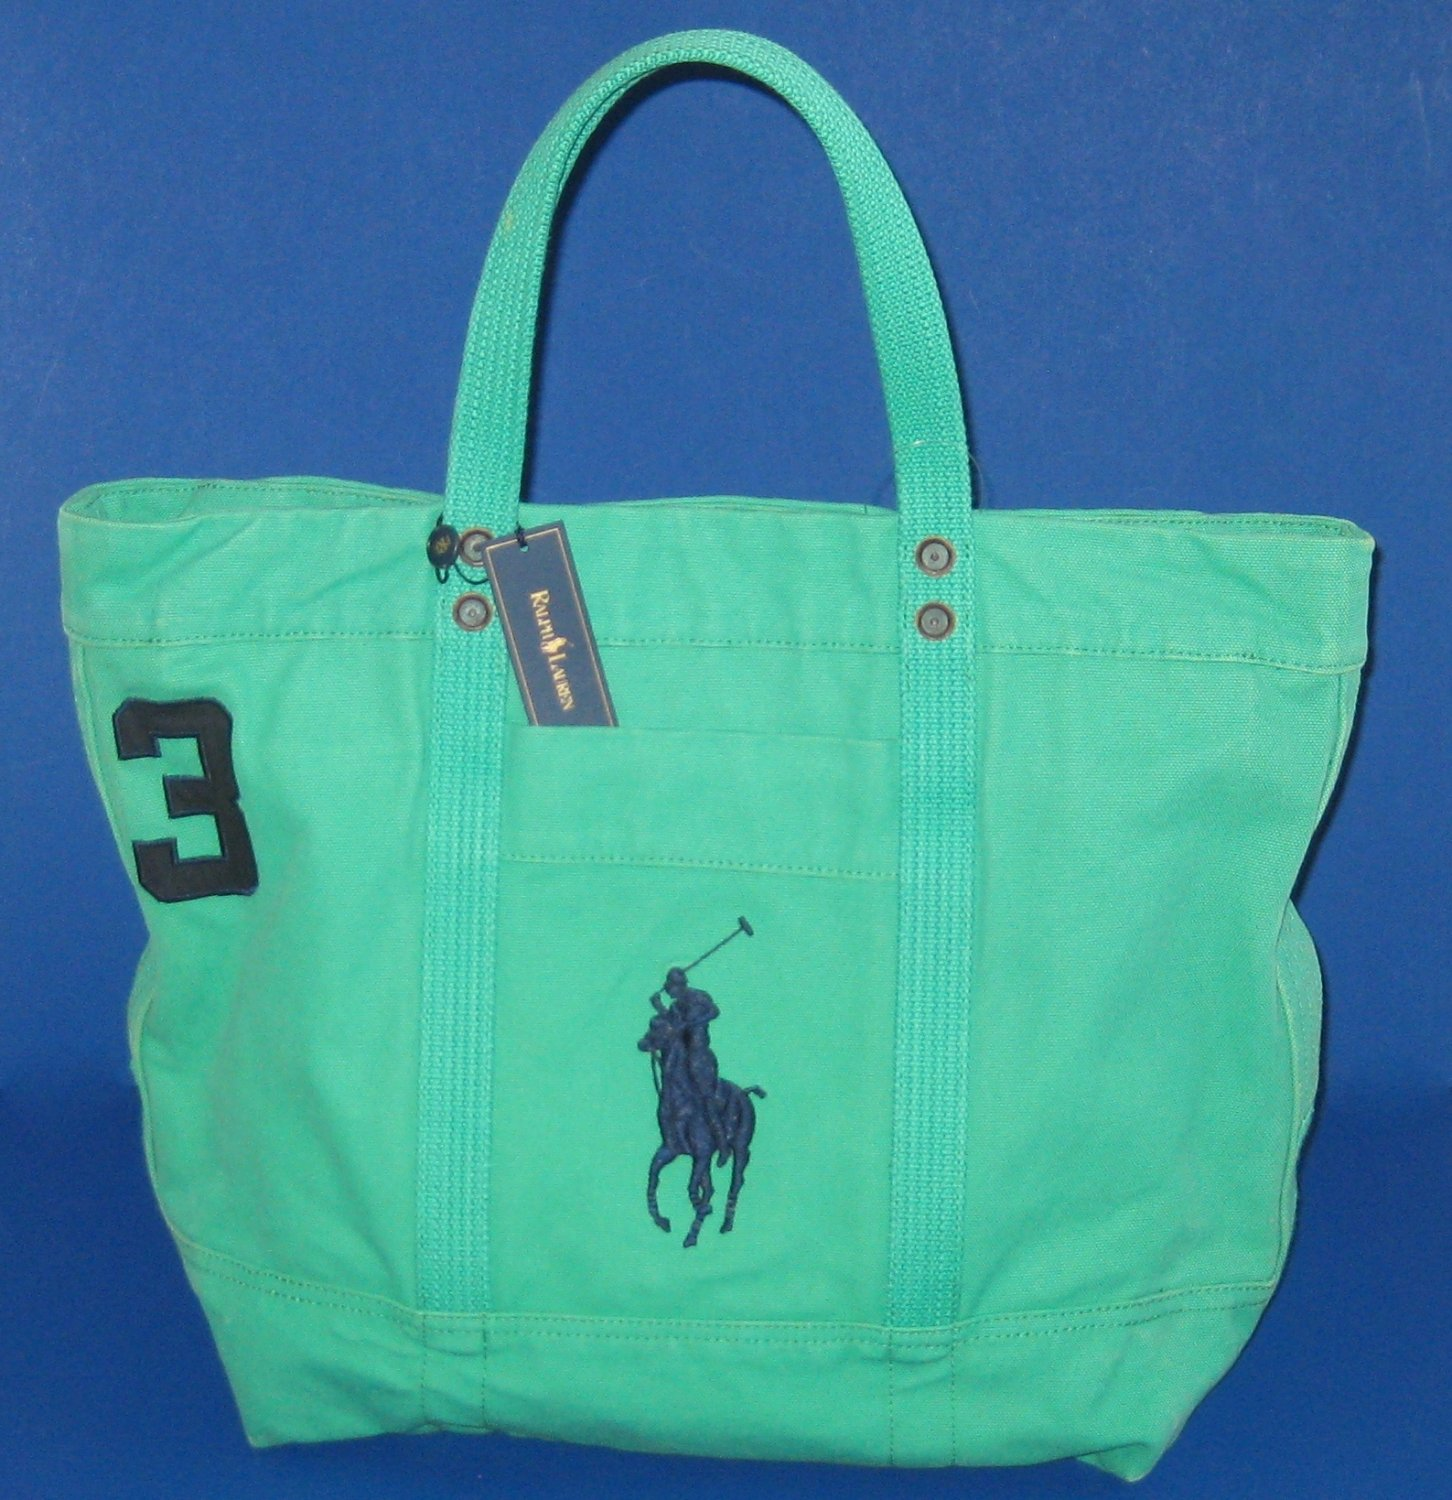 NWT Polo Ralph Lauren Green Big Pony Zip Cotton Canvas Tote Bag - Unisex